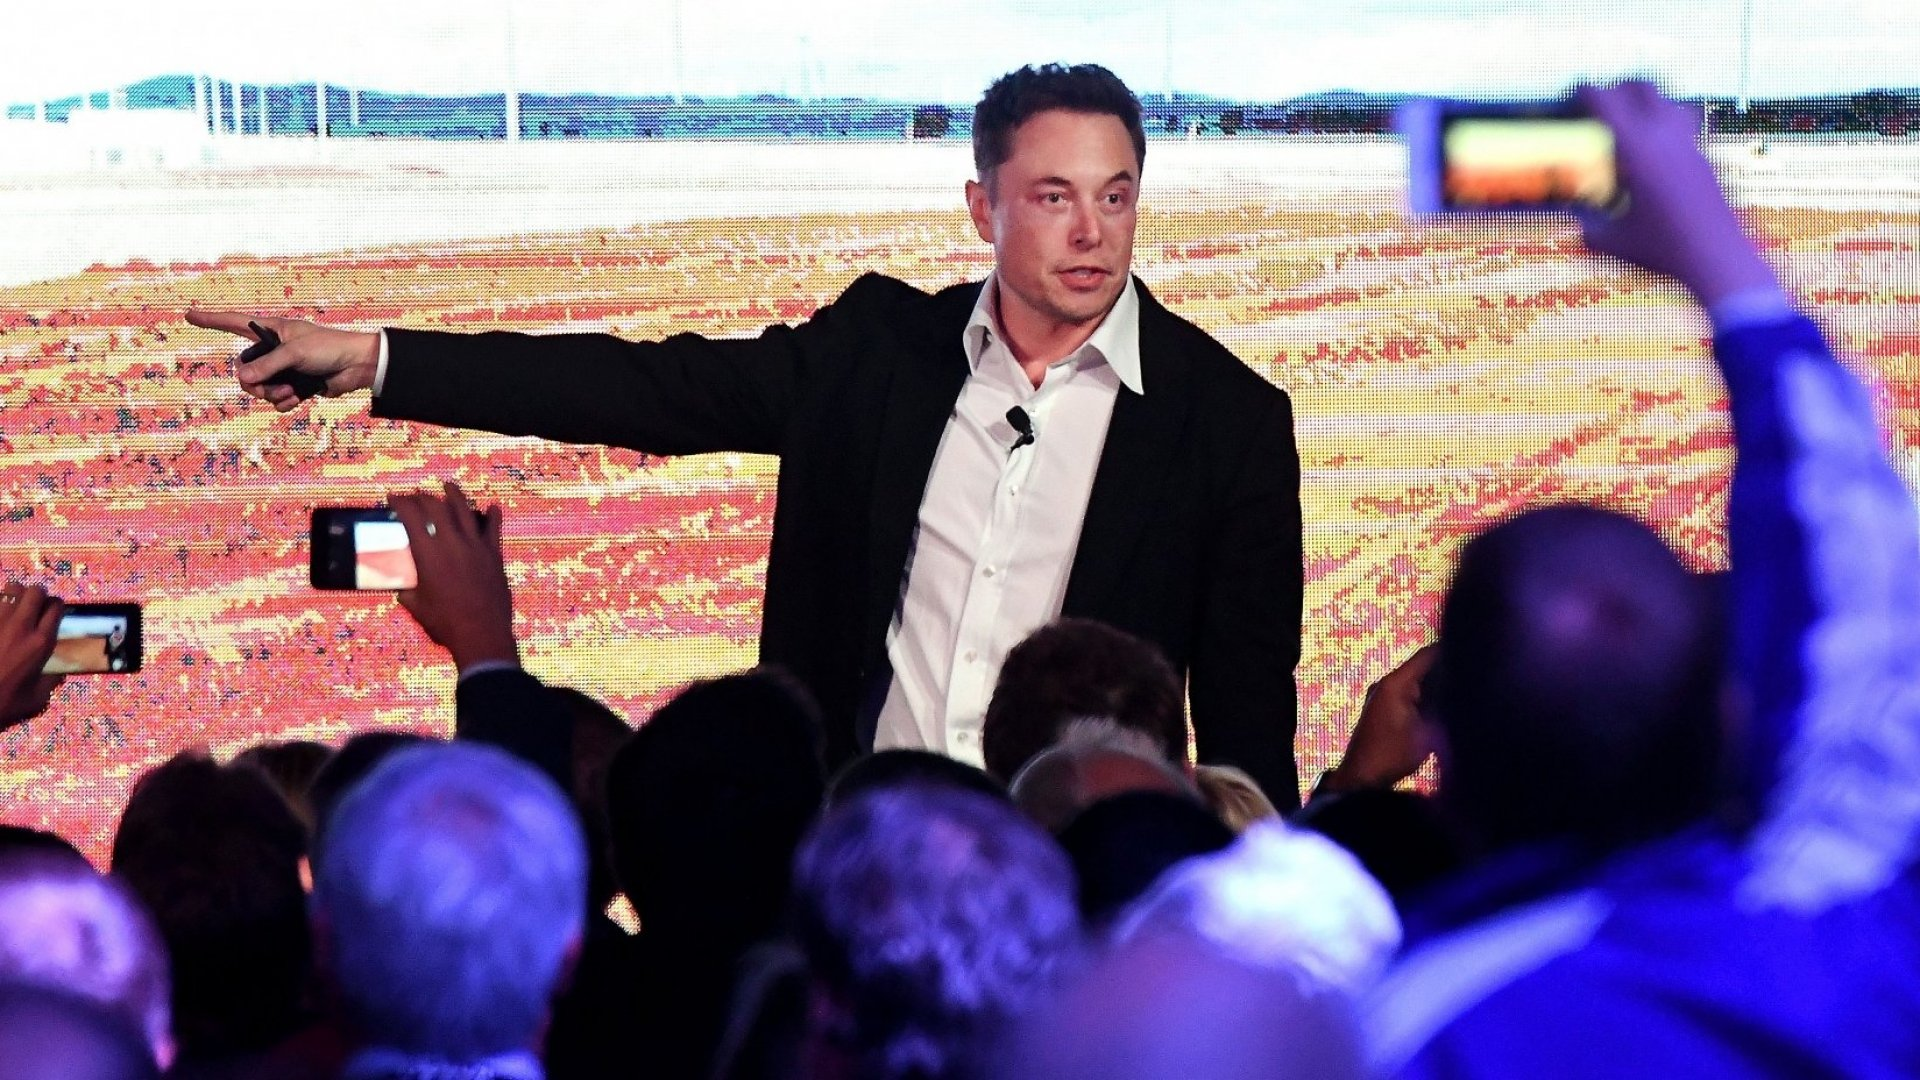 Elon Musk during his presentation at the Tesla Powerpack Launch Event at Hornsdale Wind Farm on September 29, 2017 in Adelaide, Australia.